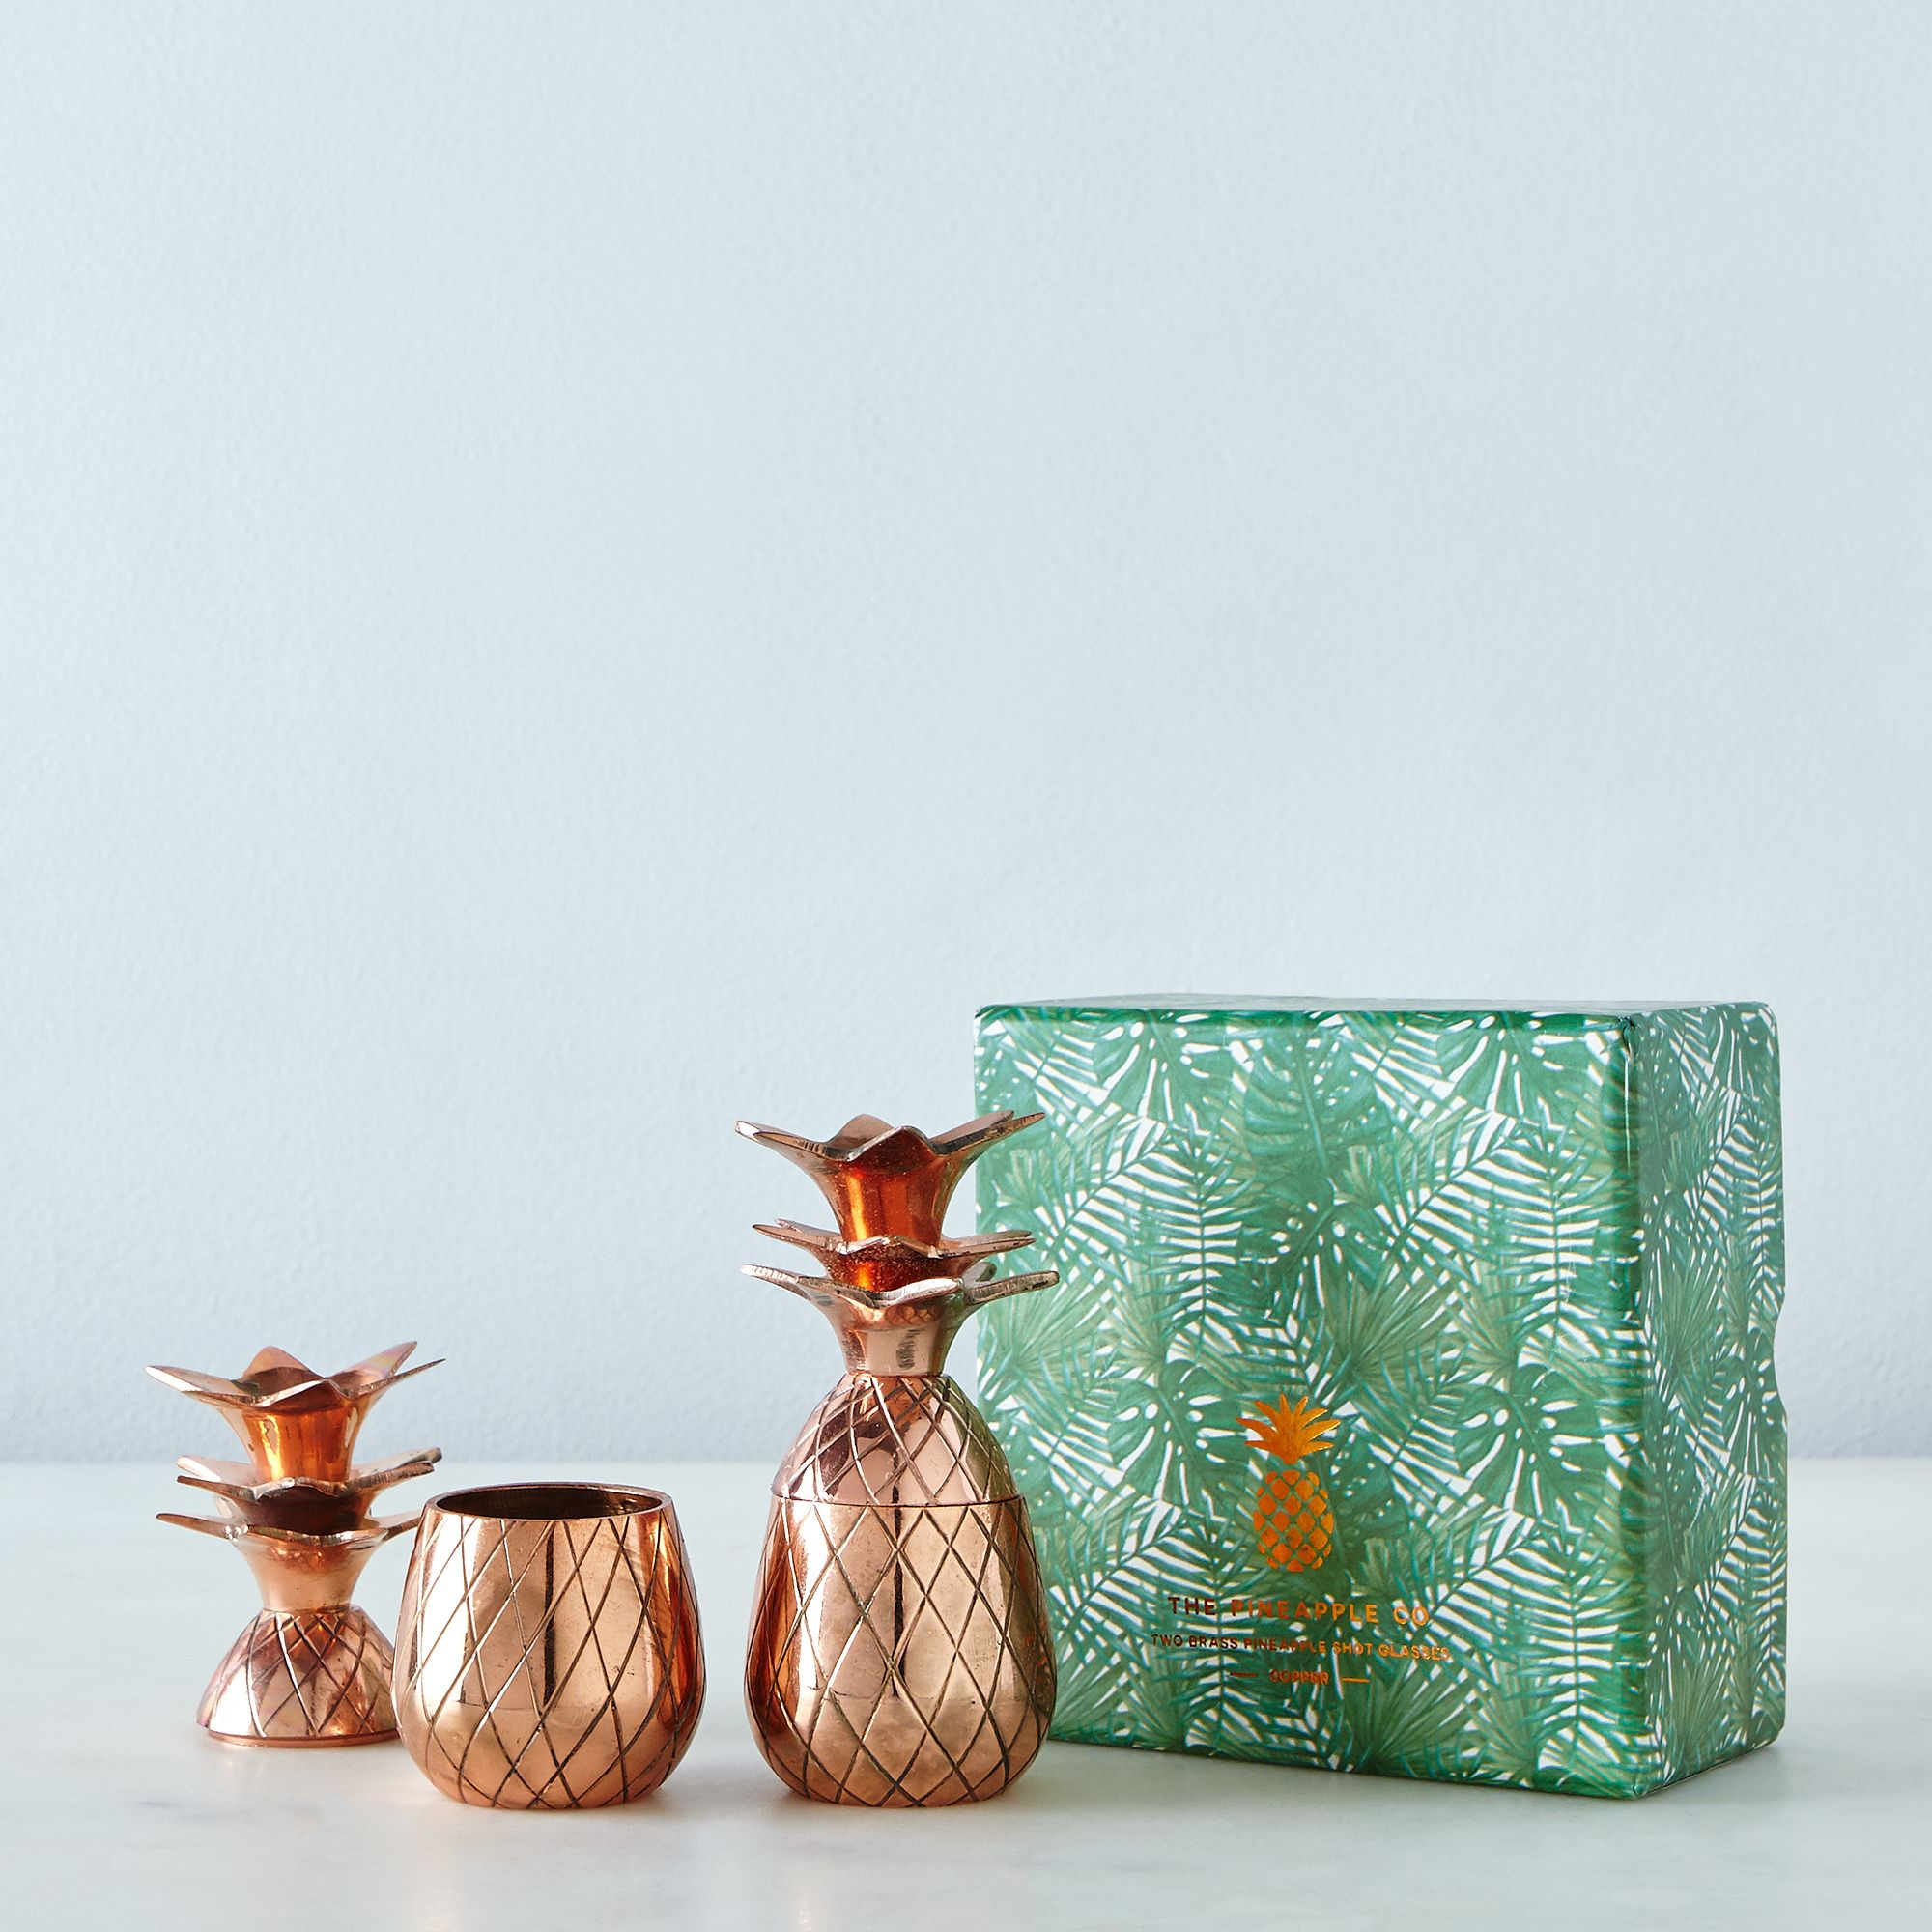 328b65ce a0f9 11e5 a190 0ef7535729df  2015 1103 w p designs pineapple shot glass set of 2 copper silo rocky luten 030